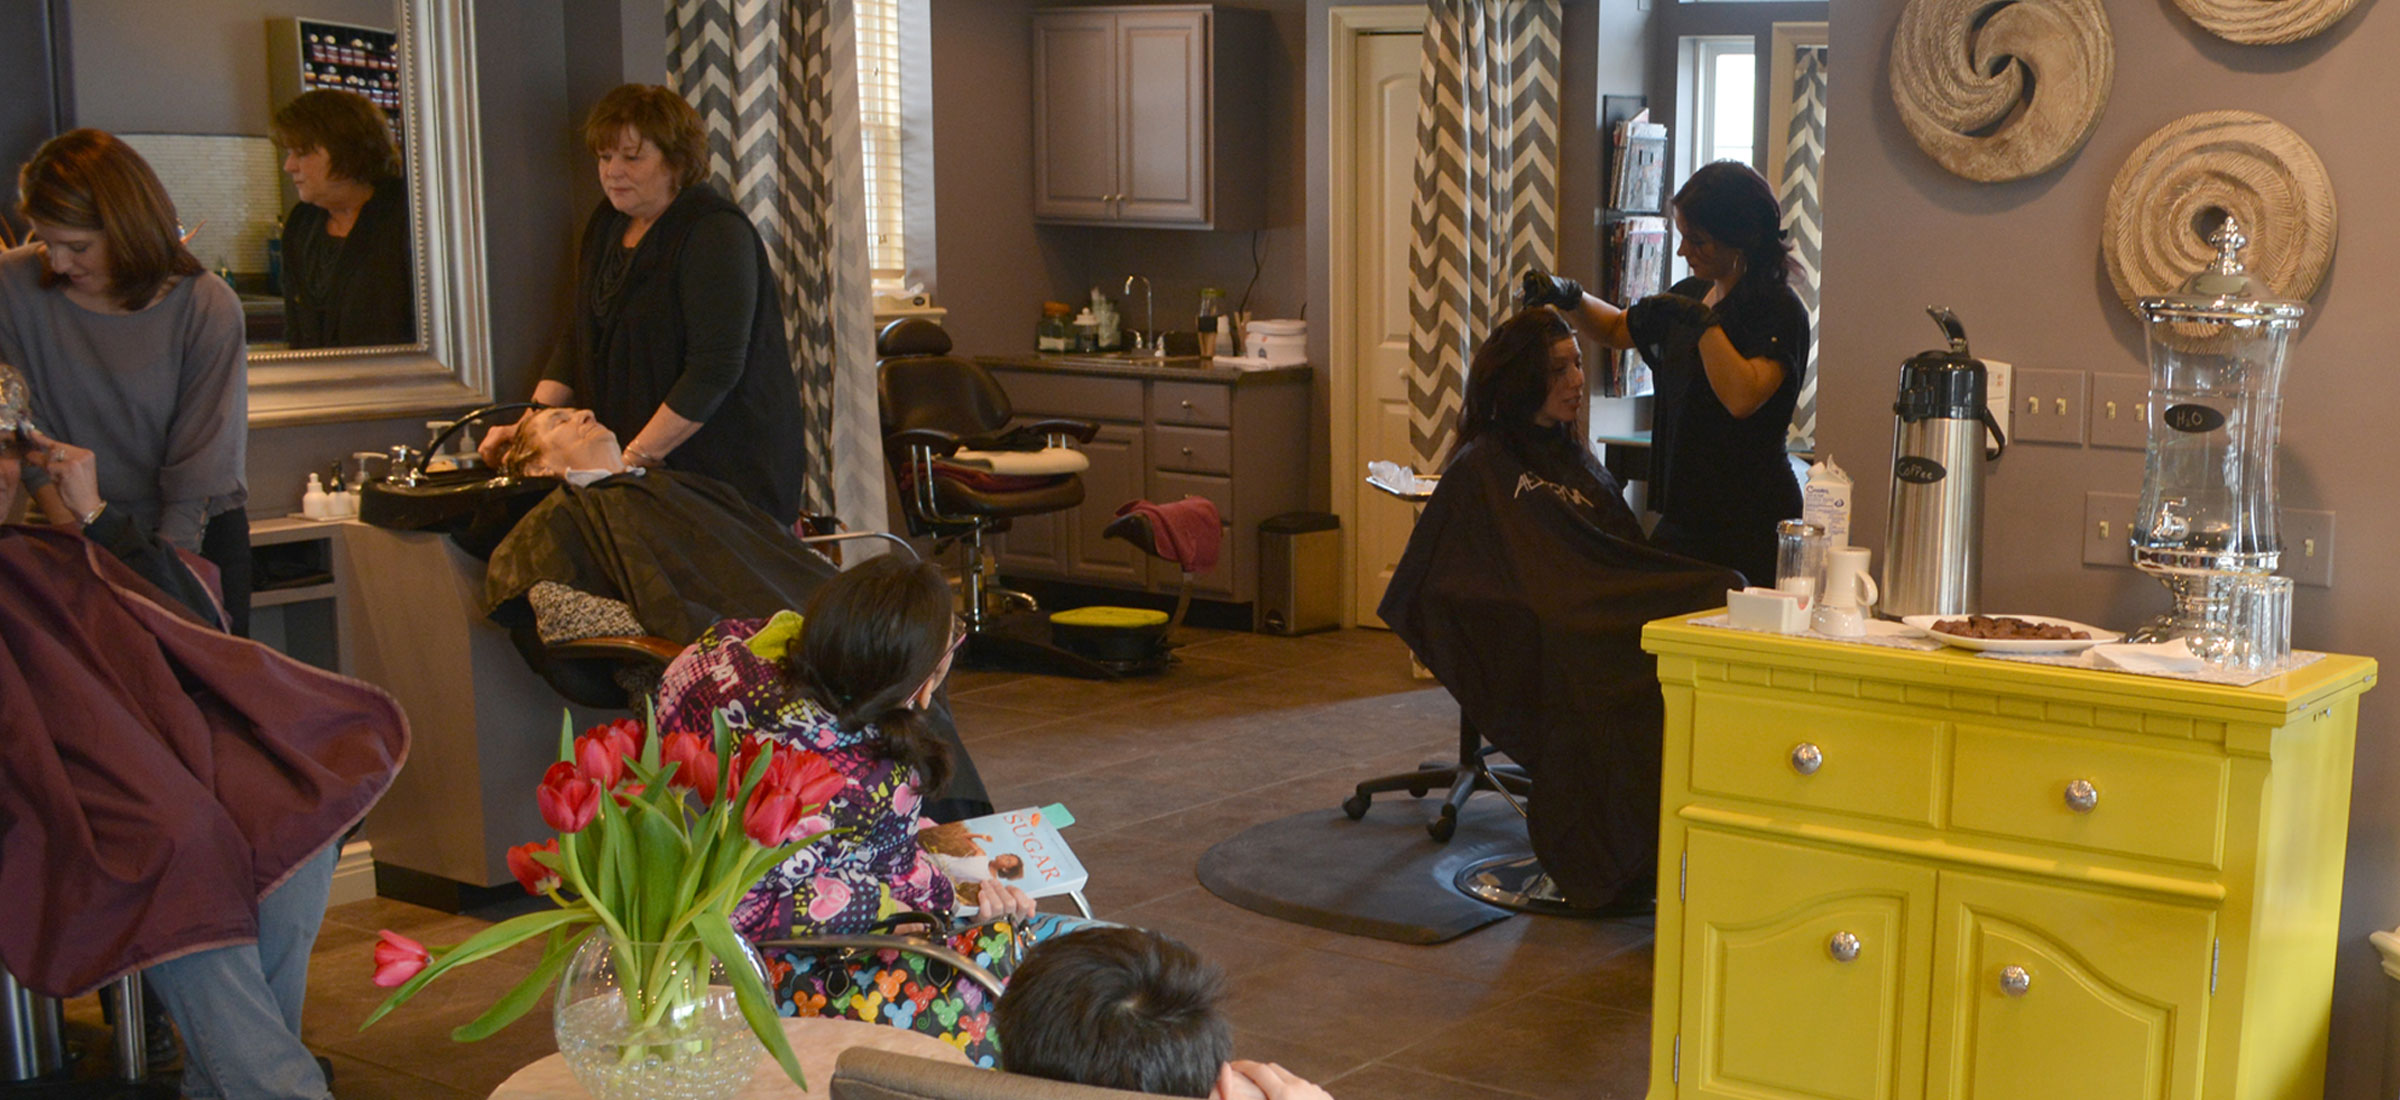 The girls at work at the salon